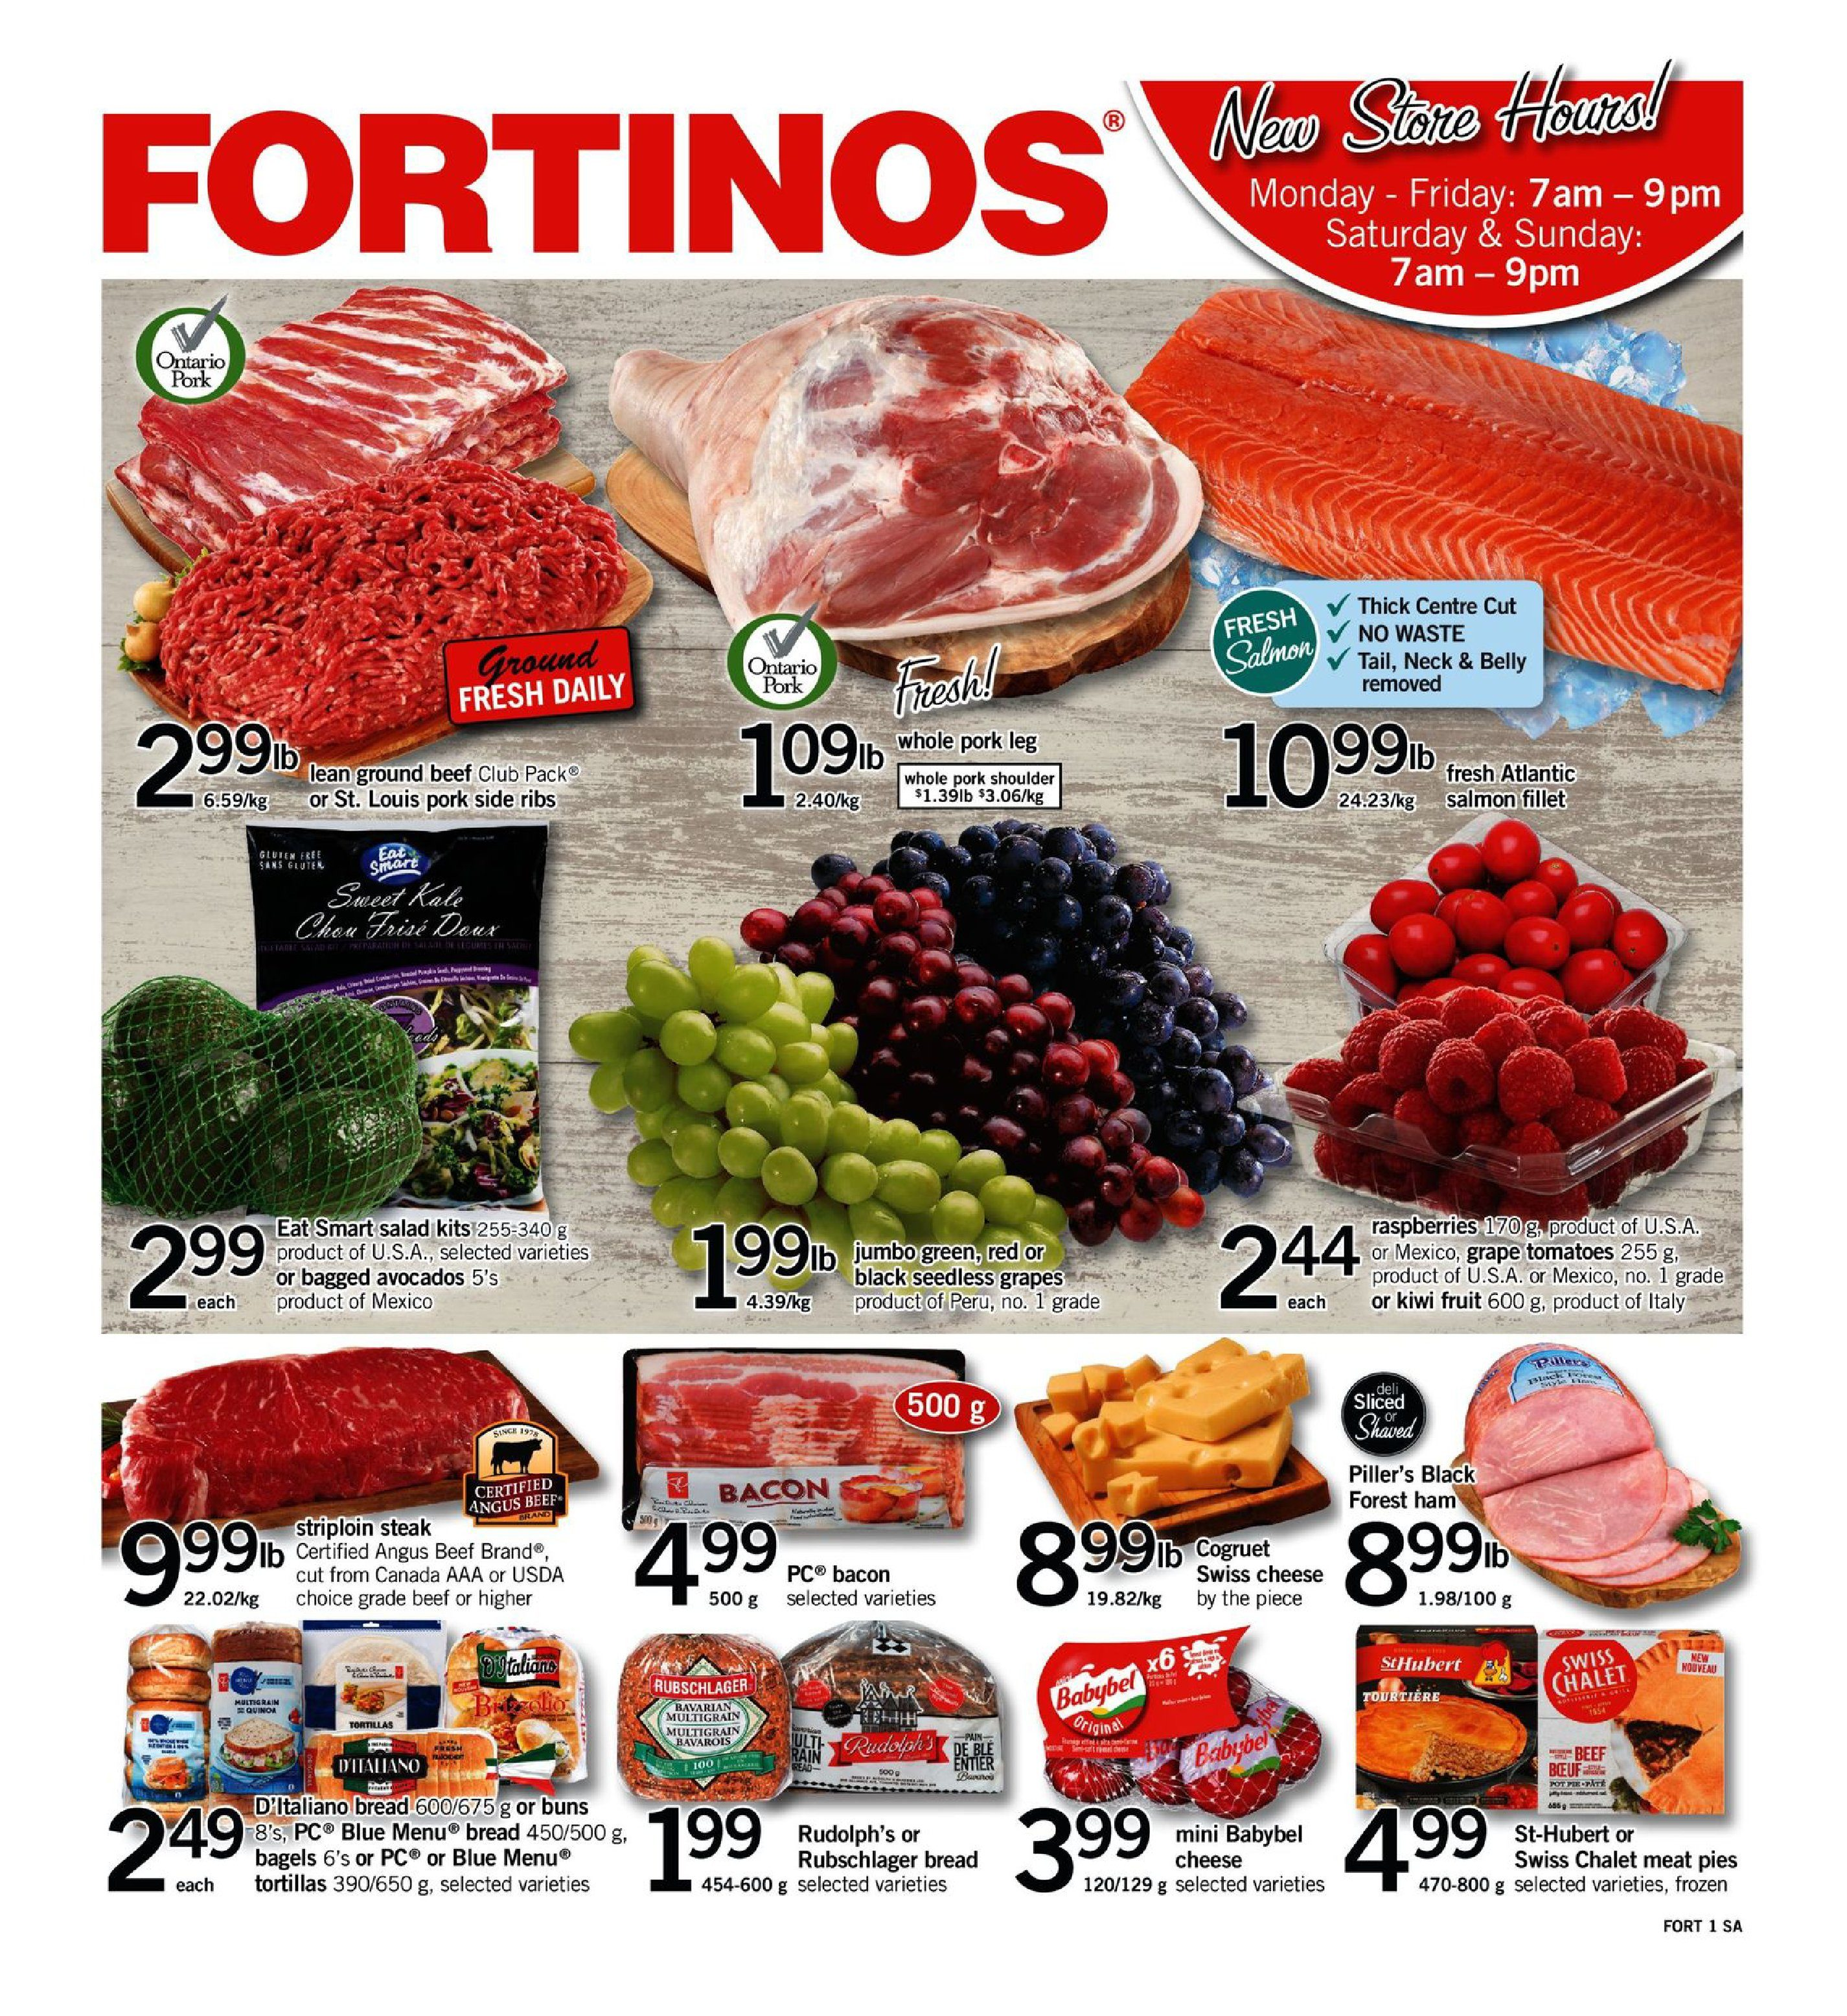 Fortinos Weekly Flyer - Weekly Specials - Jan 10 – 16 - RedFlagDeals com